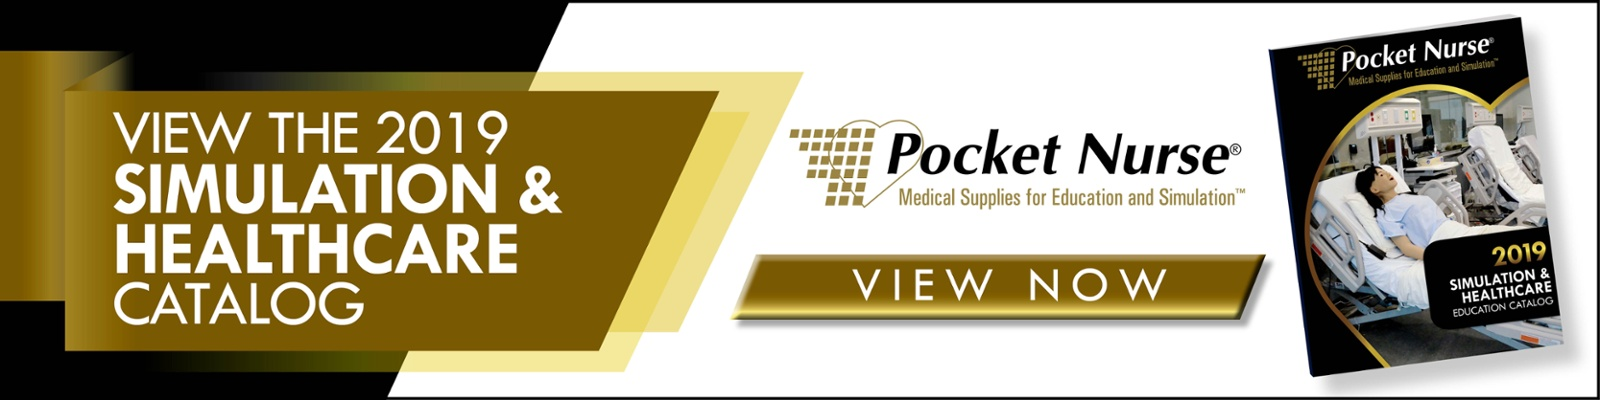 View the 2019 Pocket Nurse Simulation and Healthcare Catalog